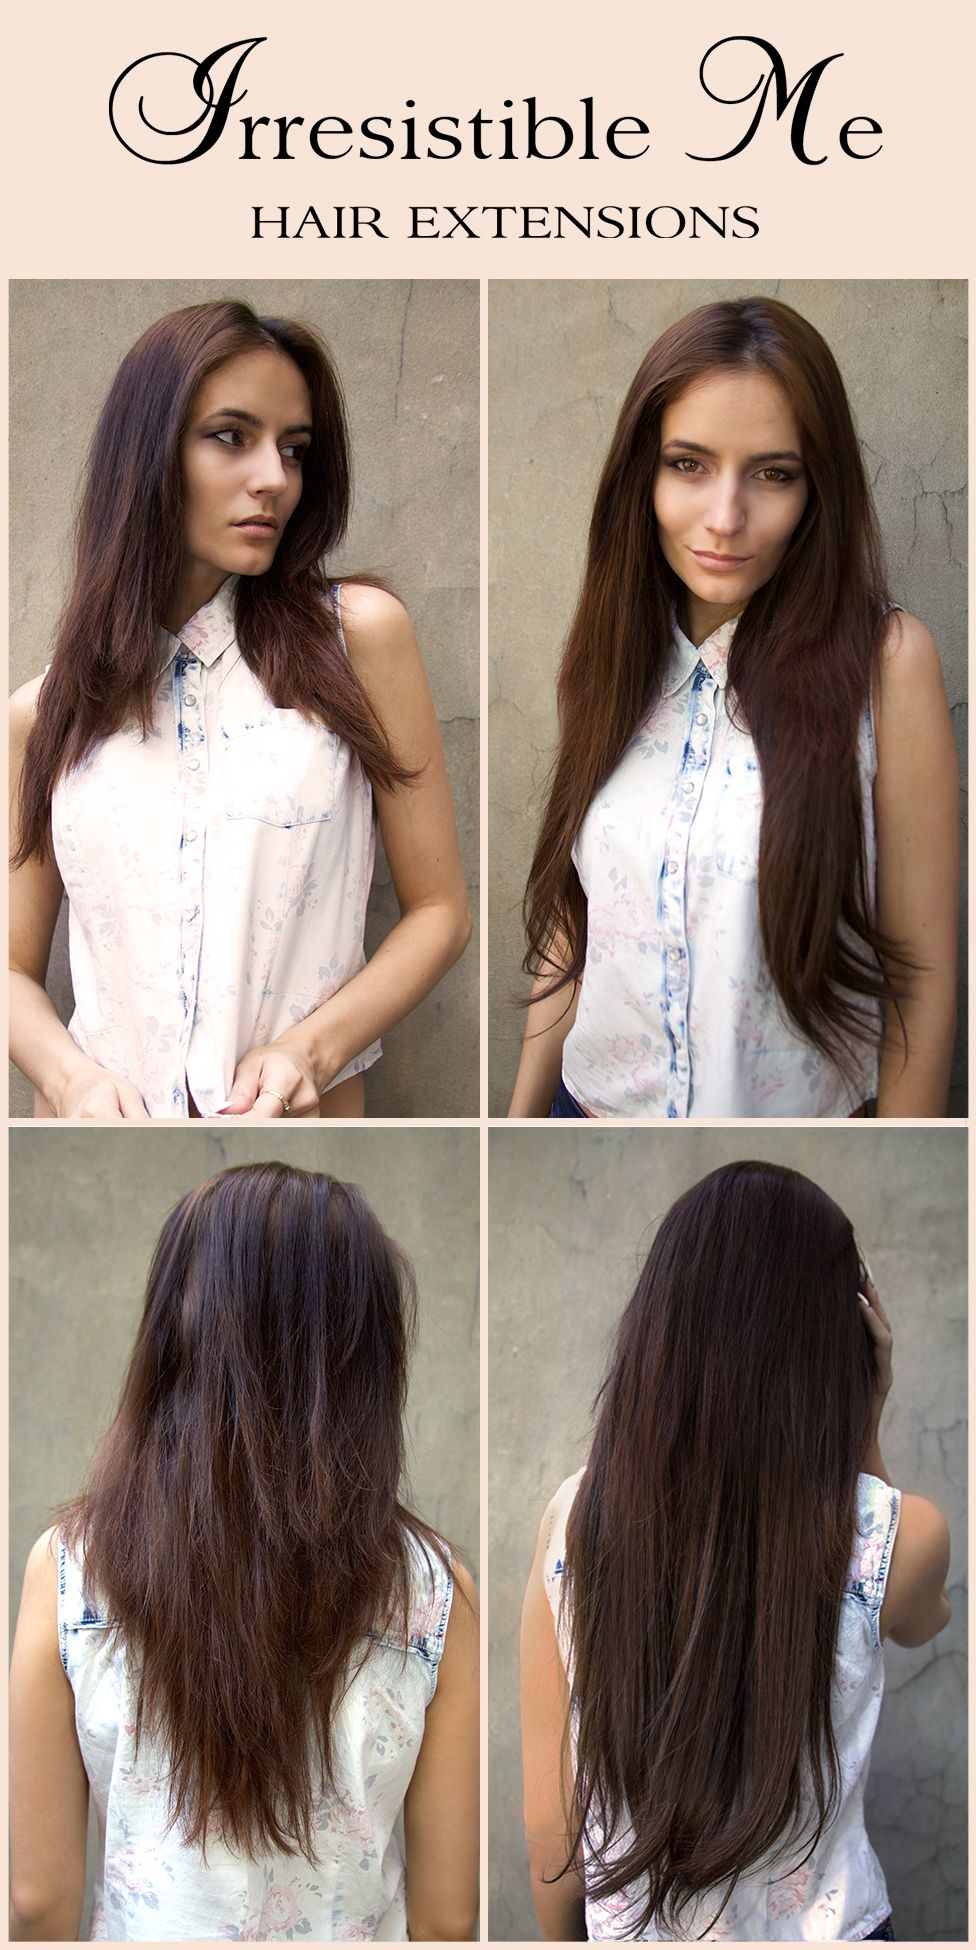 Check Out These Awesome 100 Human Remy Clip In Hair Extensions You